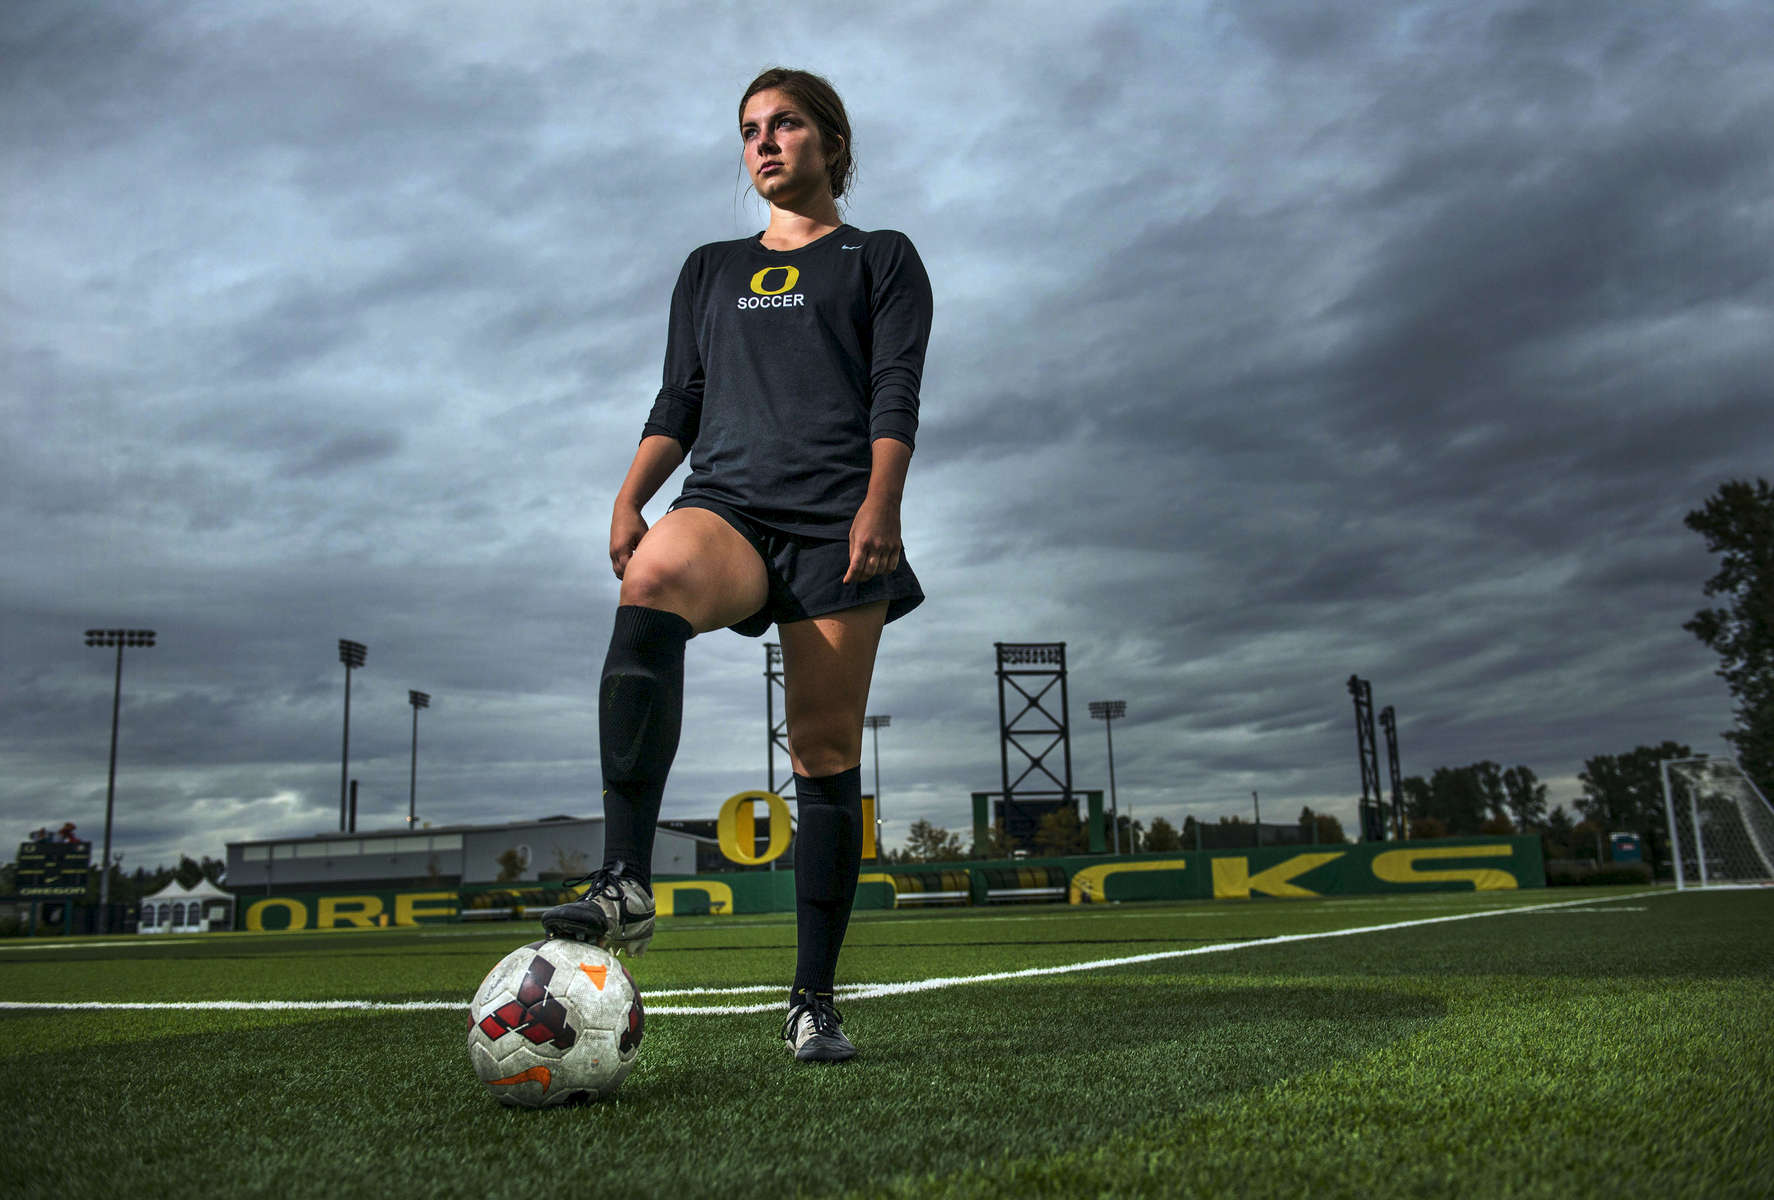 University of Oregon soccer player Lilly Archer worked her way into the starting lineup by becoming the go-to player for set pieces on corner kicks and penalty kicks. She is the teams leading scorer so far this season. Photographed at Pape Field in Eugene on Tuesday September 24, 2014. (Andy Nelson/The Register-Guard)